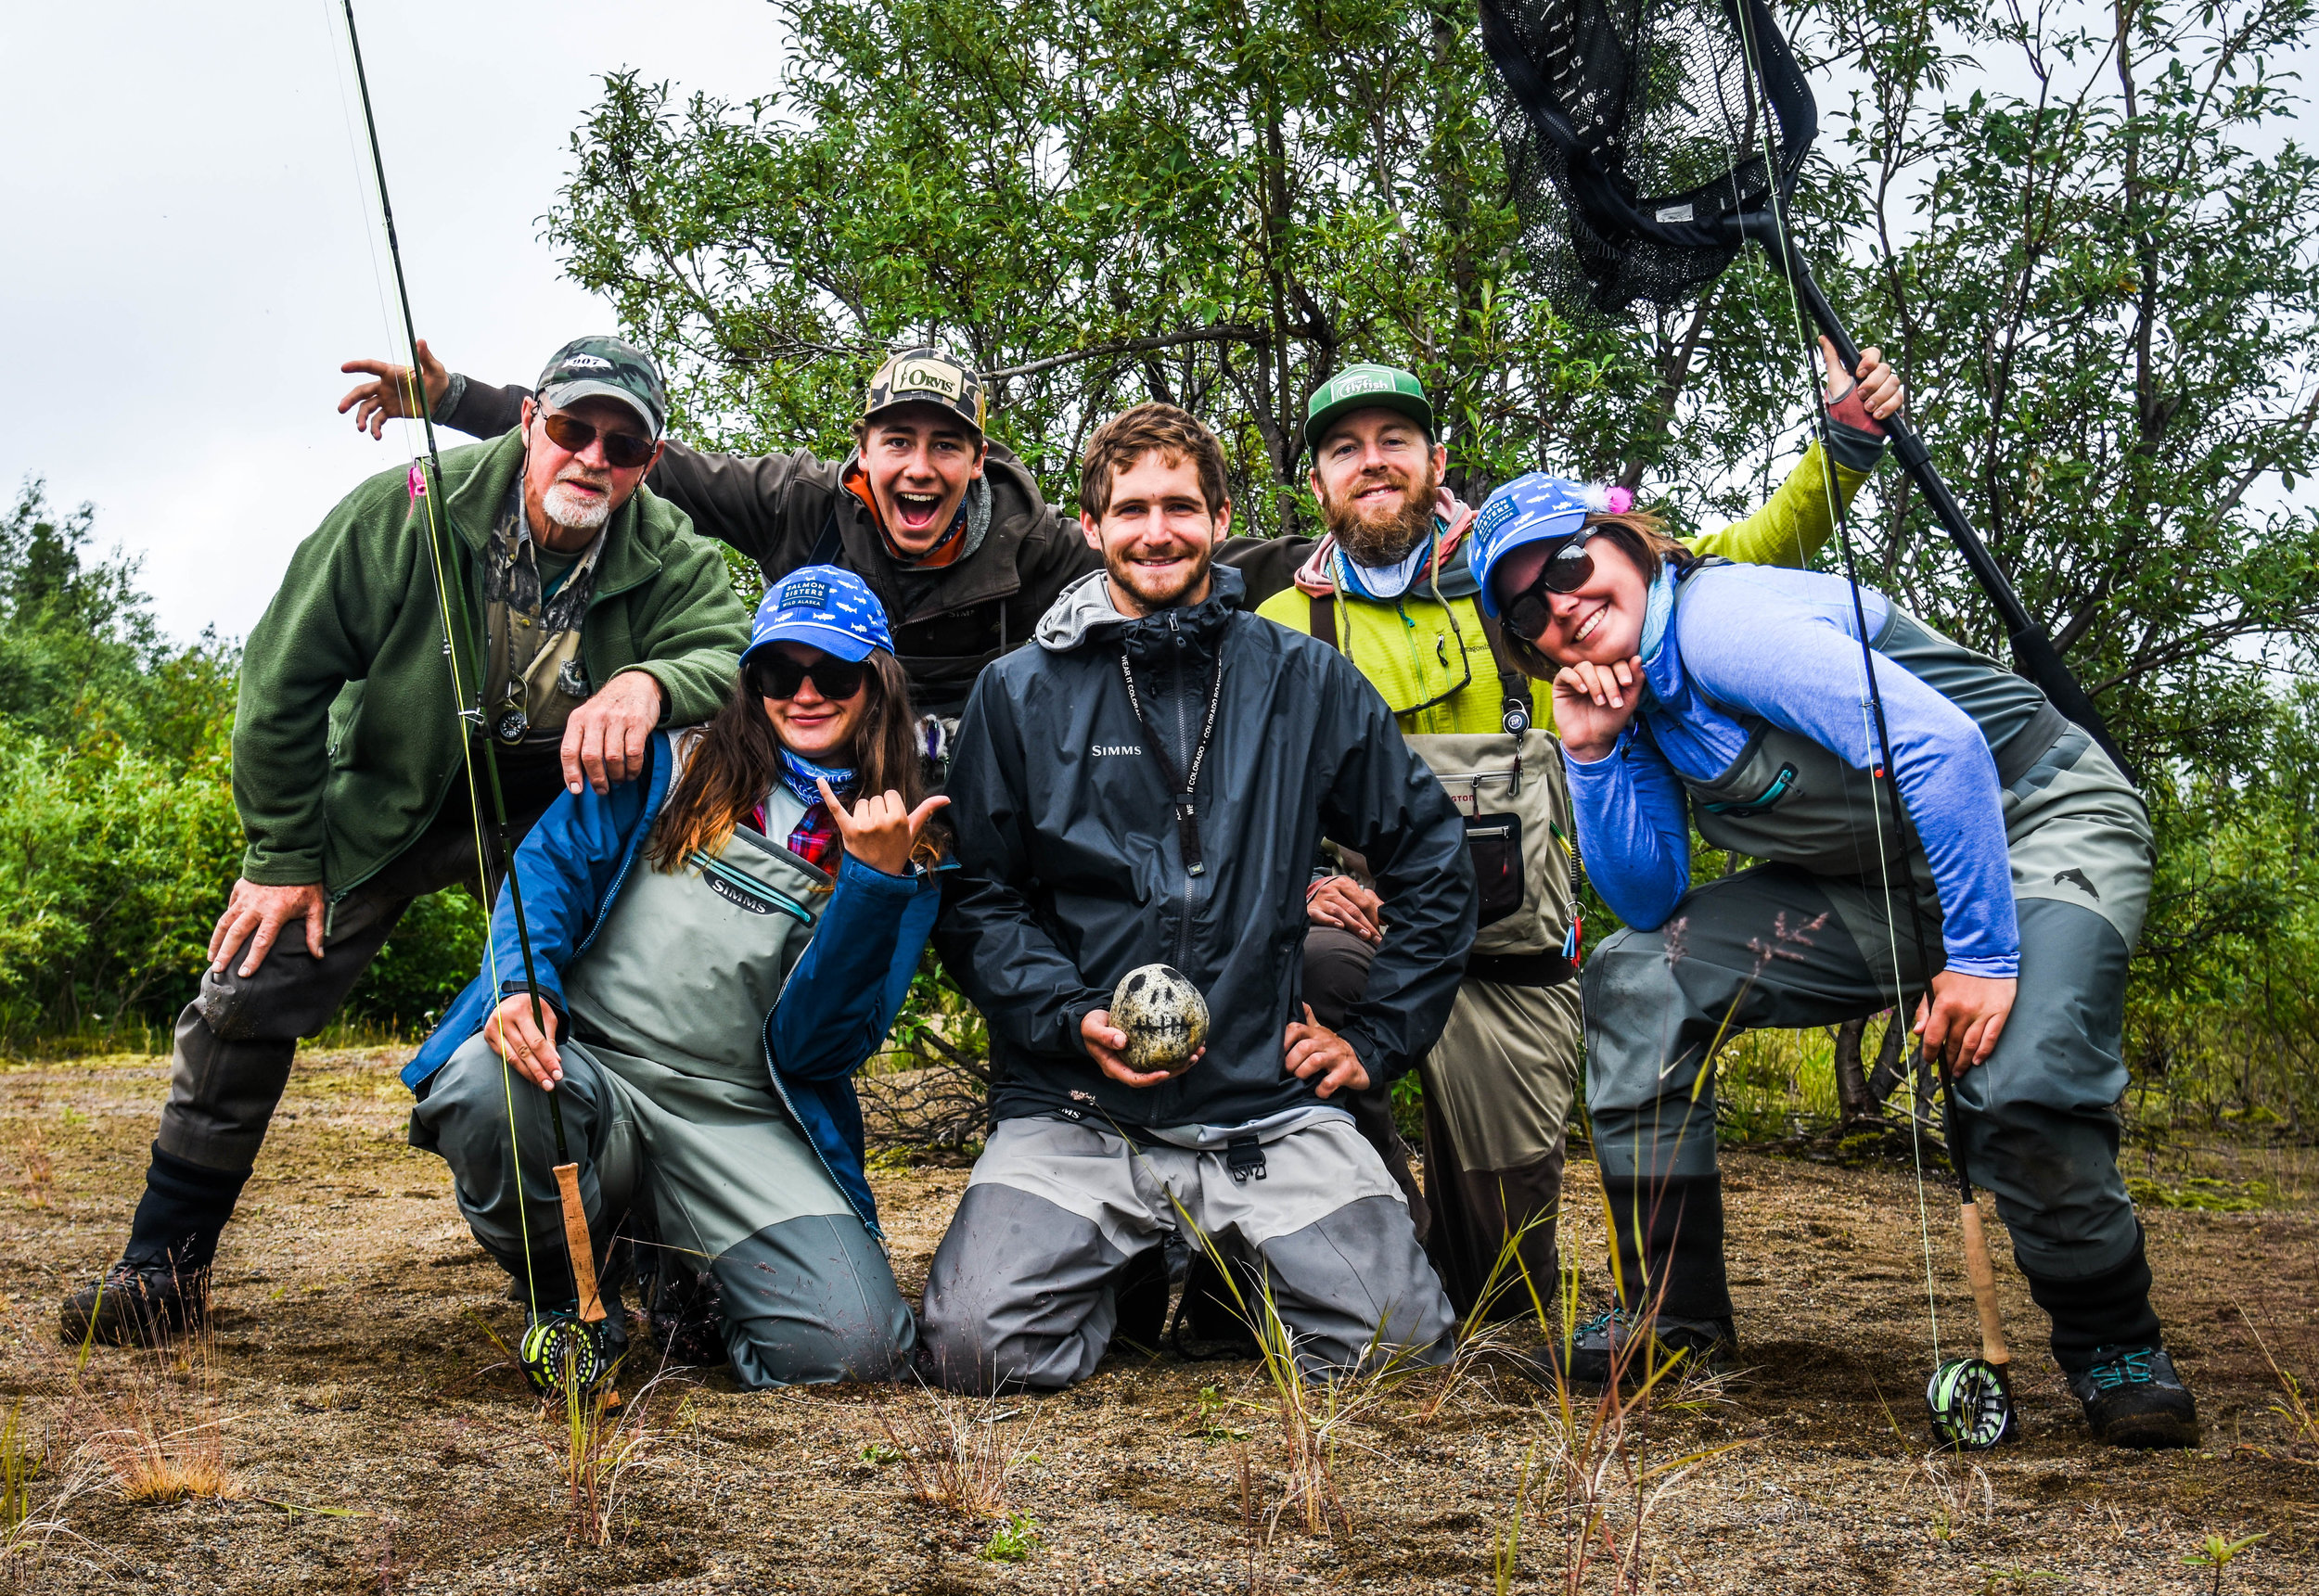 The 2018 5 Rivers Odyssey Crew (left to right):  (Back Row) Chuck Ash (Bristol Bay guide), Anthony Ortiz (CU-Boulder), Eric Booton (TU Alaska)  (Front Row) Kylie Hogan (Pitt-Johnstown), Libby Glaser (Missouri State)